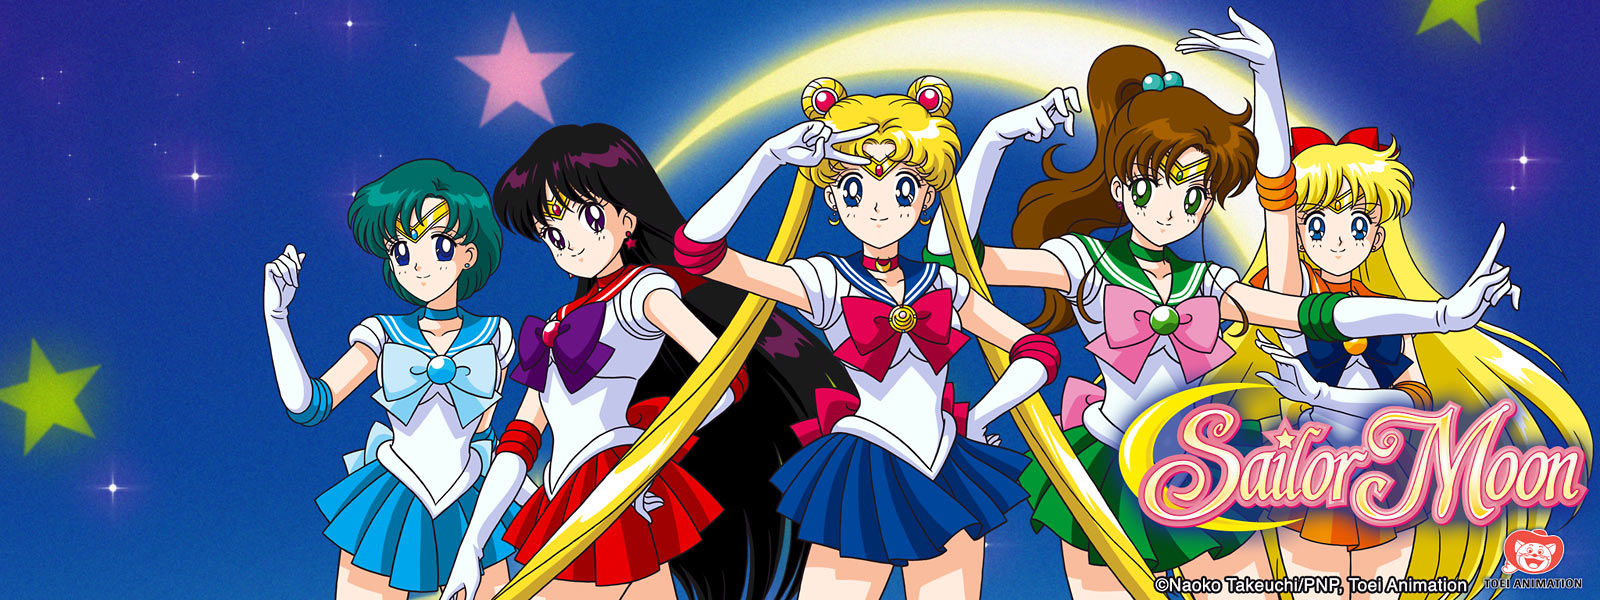 ... Sailor Moon · Shojo Beat · Shonen Sunday · SIGIKKI